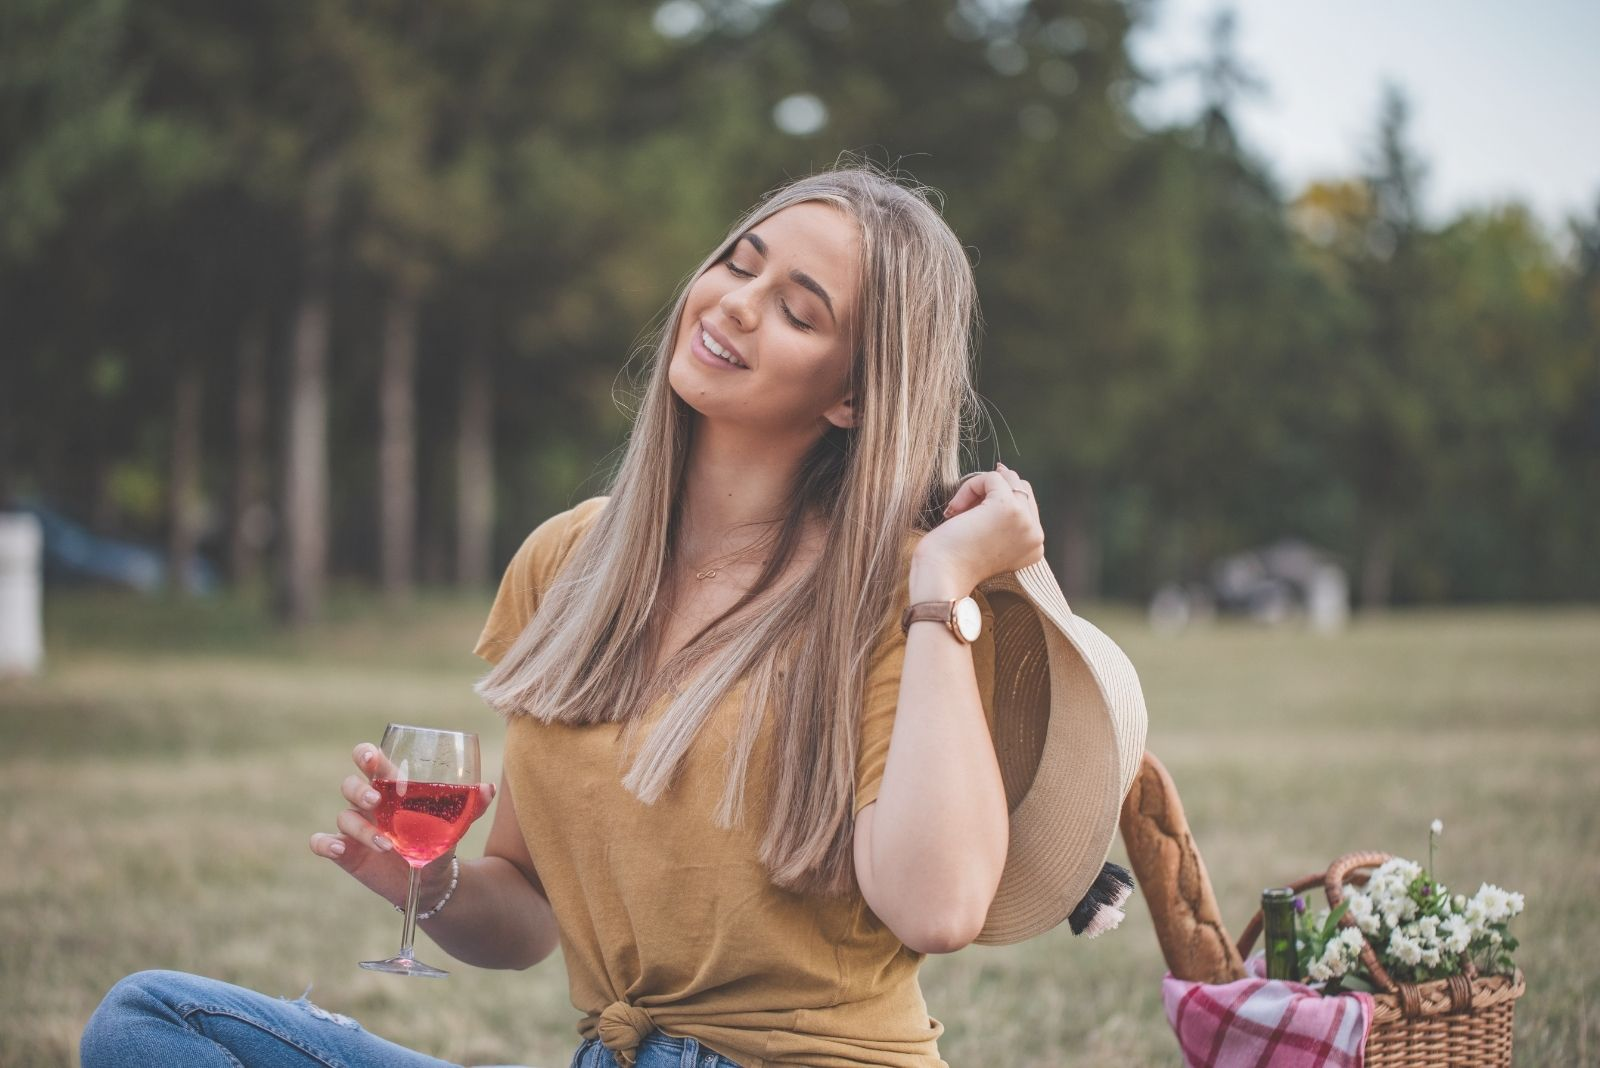 smiling woman in picnic at the park having a good time holding wine